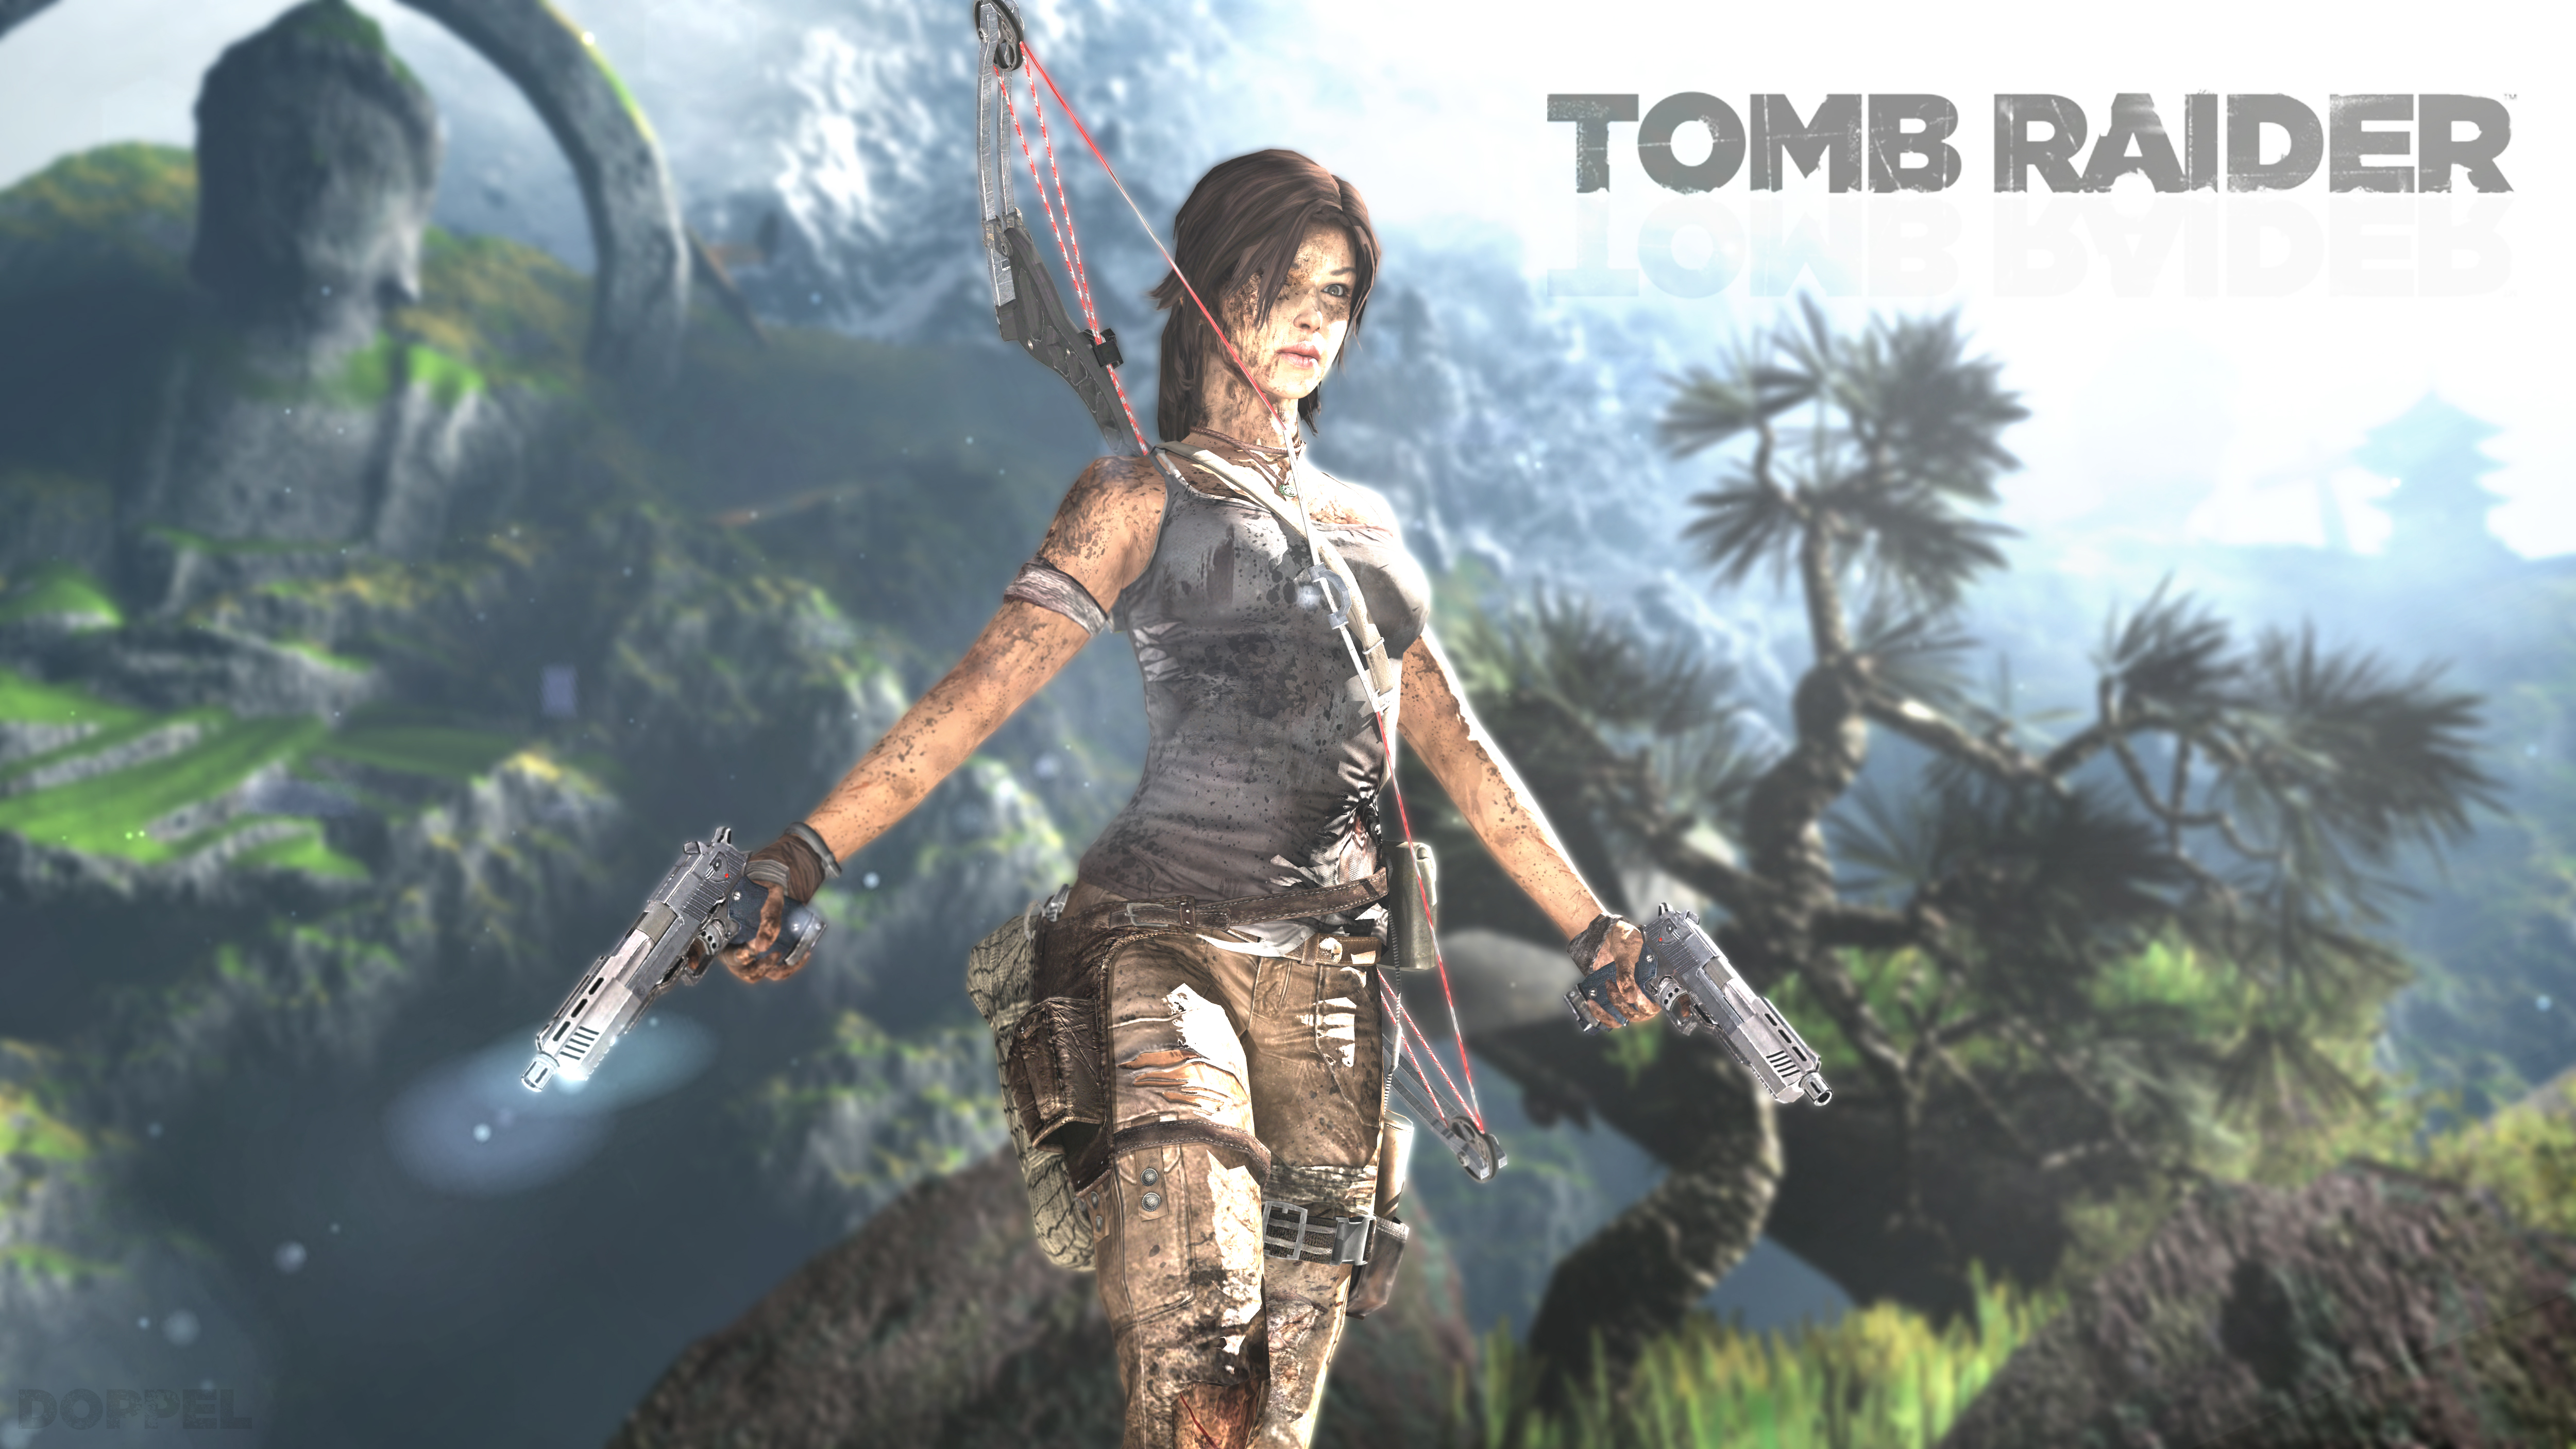 Rebooted Wallpapers Tomb Raider 1 By Doppel Zgz On Deviantart